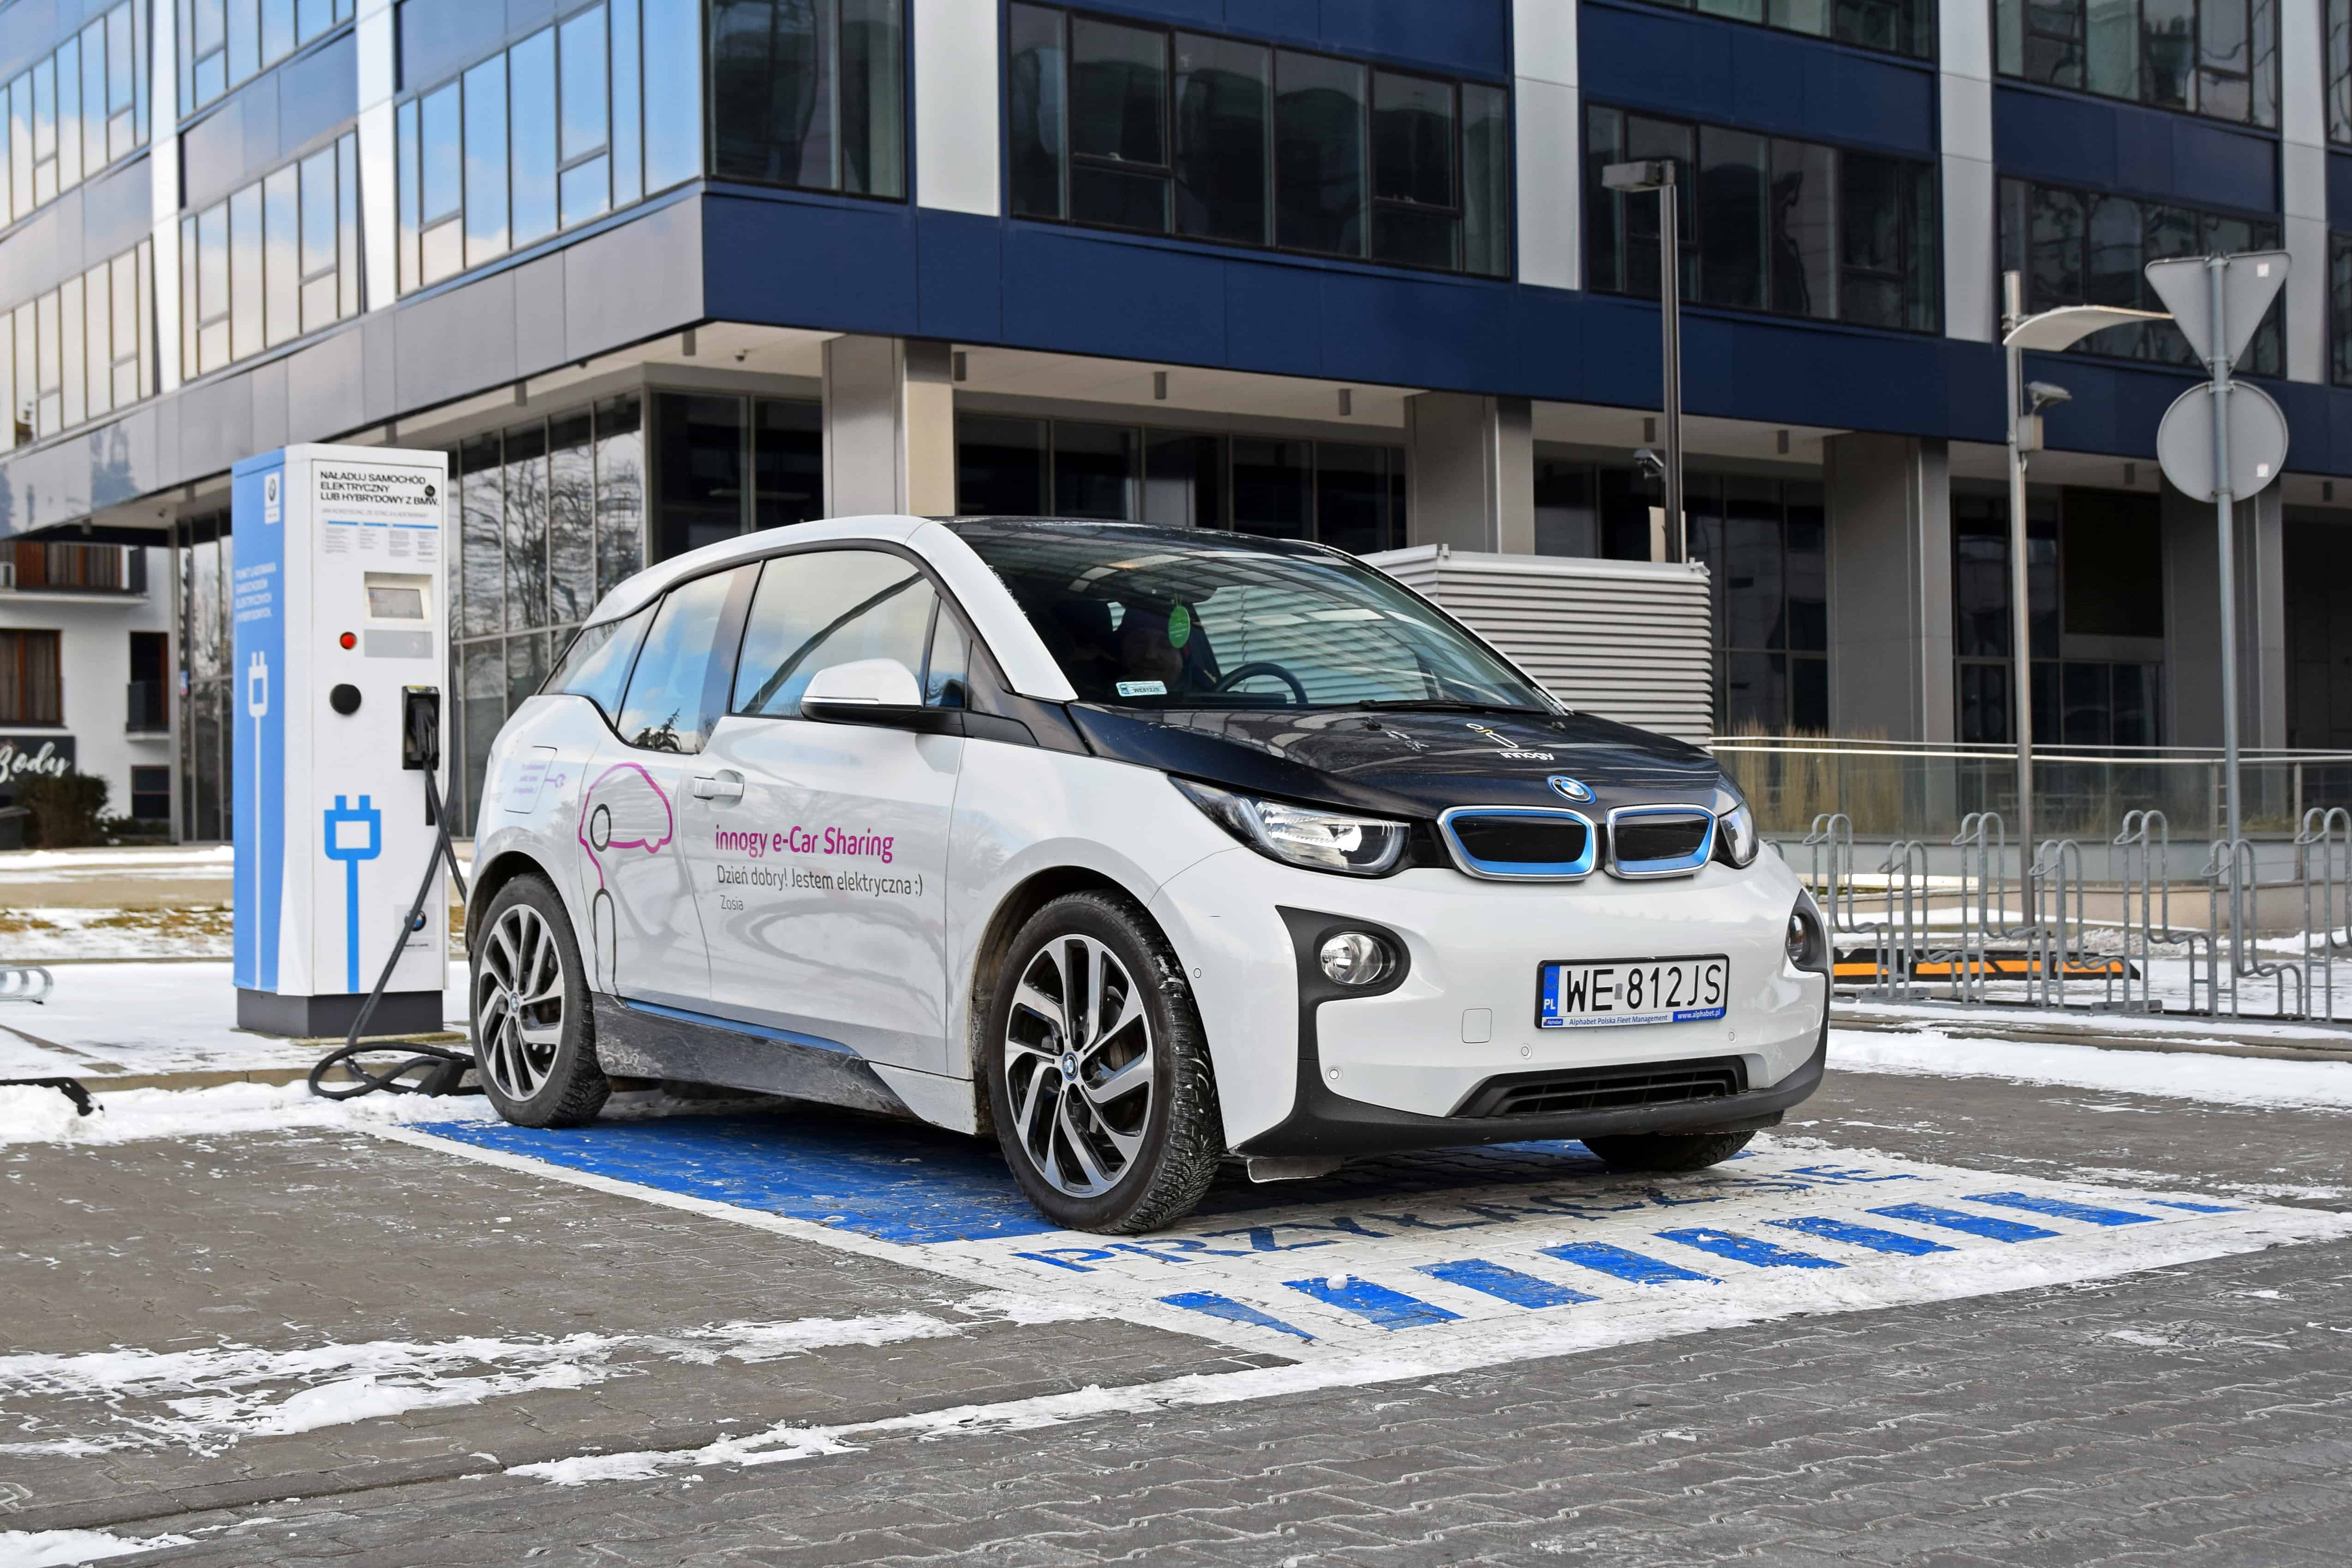 BMW Recalls 2018 Hybrid Electric Vehicles That Could Lose Power While Driving